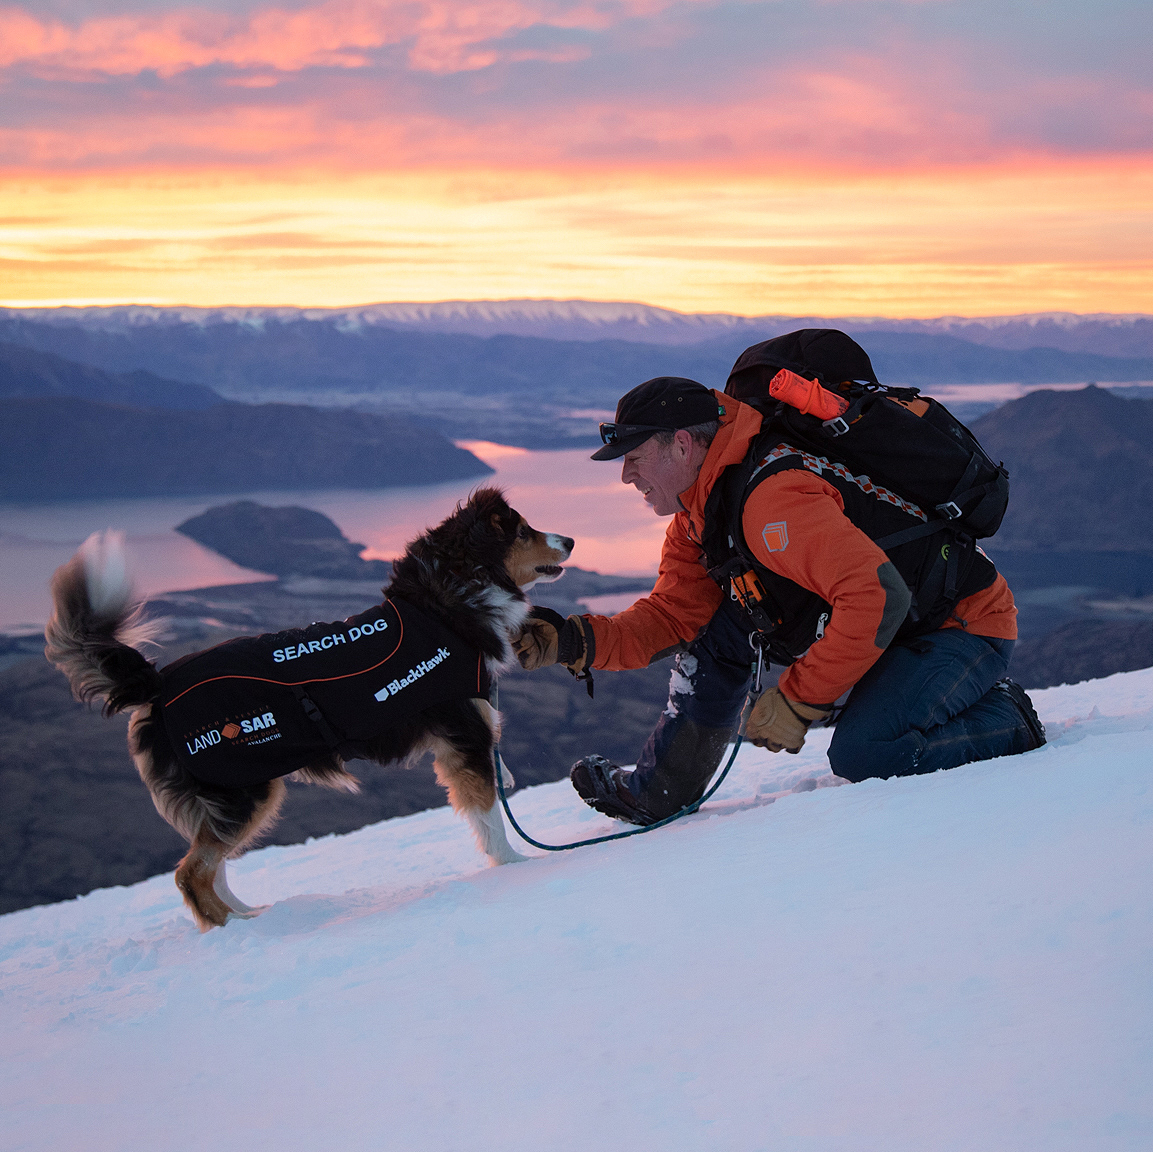 Masterpet: Black Hawk Hero Image of Land search and rescue dog and owner